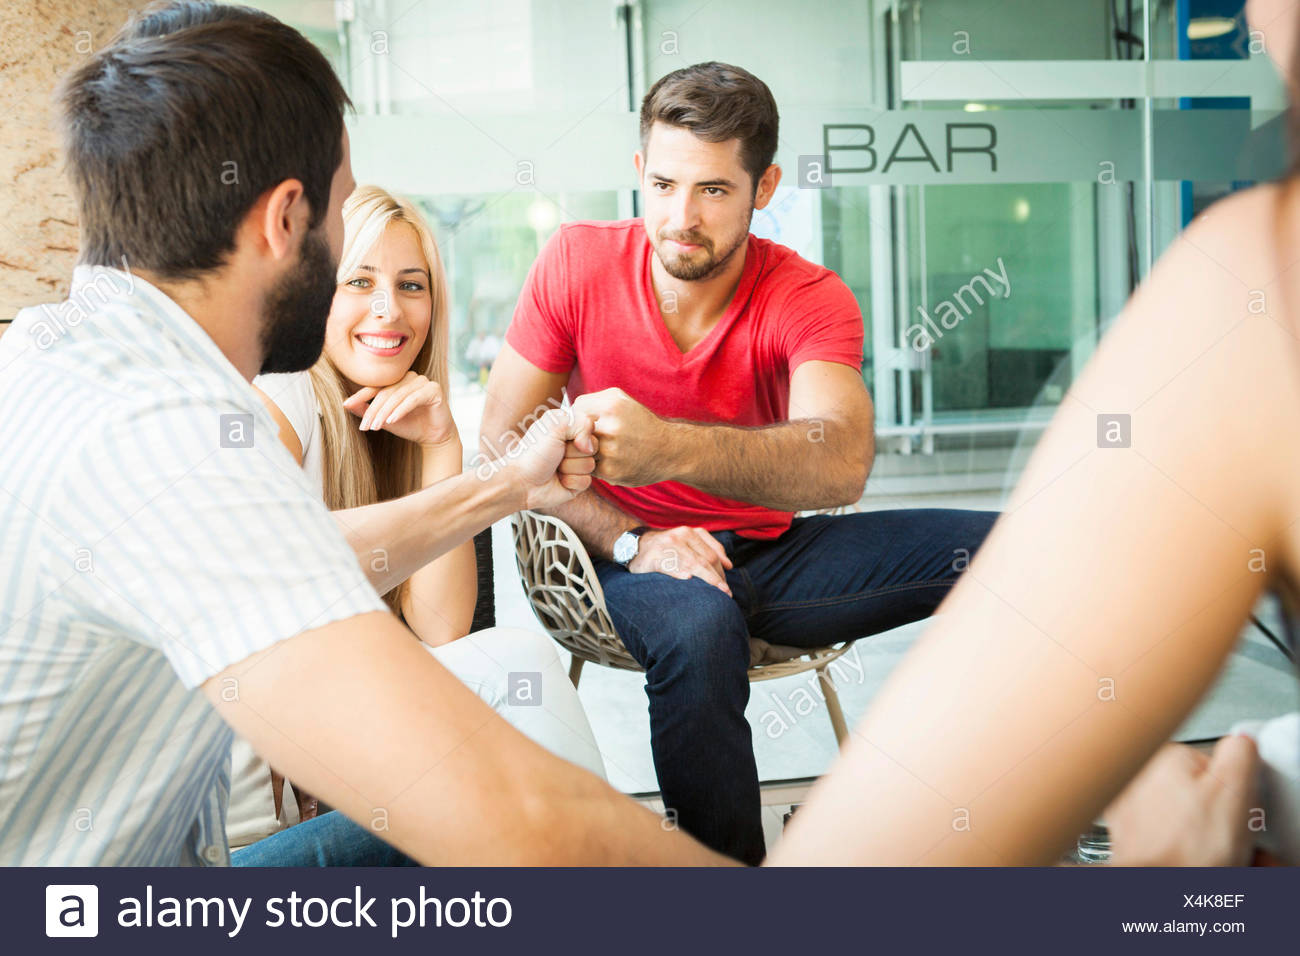 Two male students doing fist bump - Stock Image